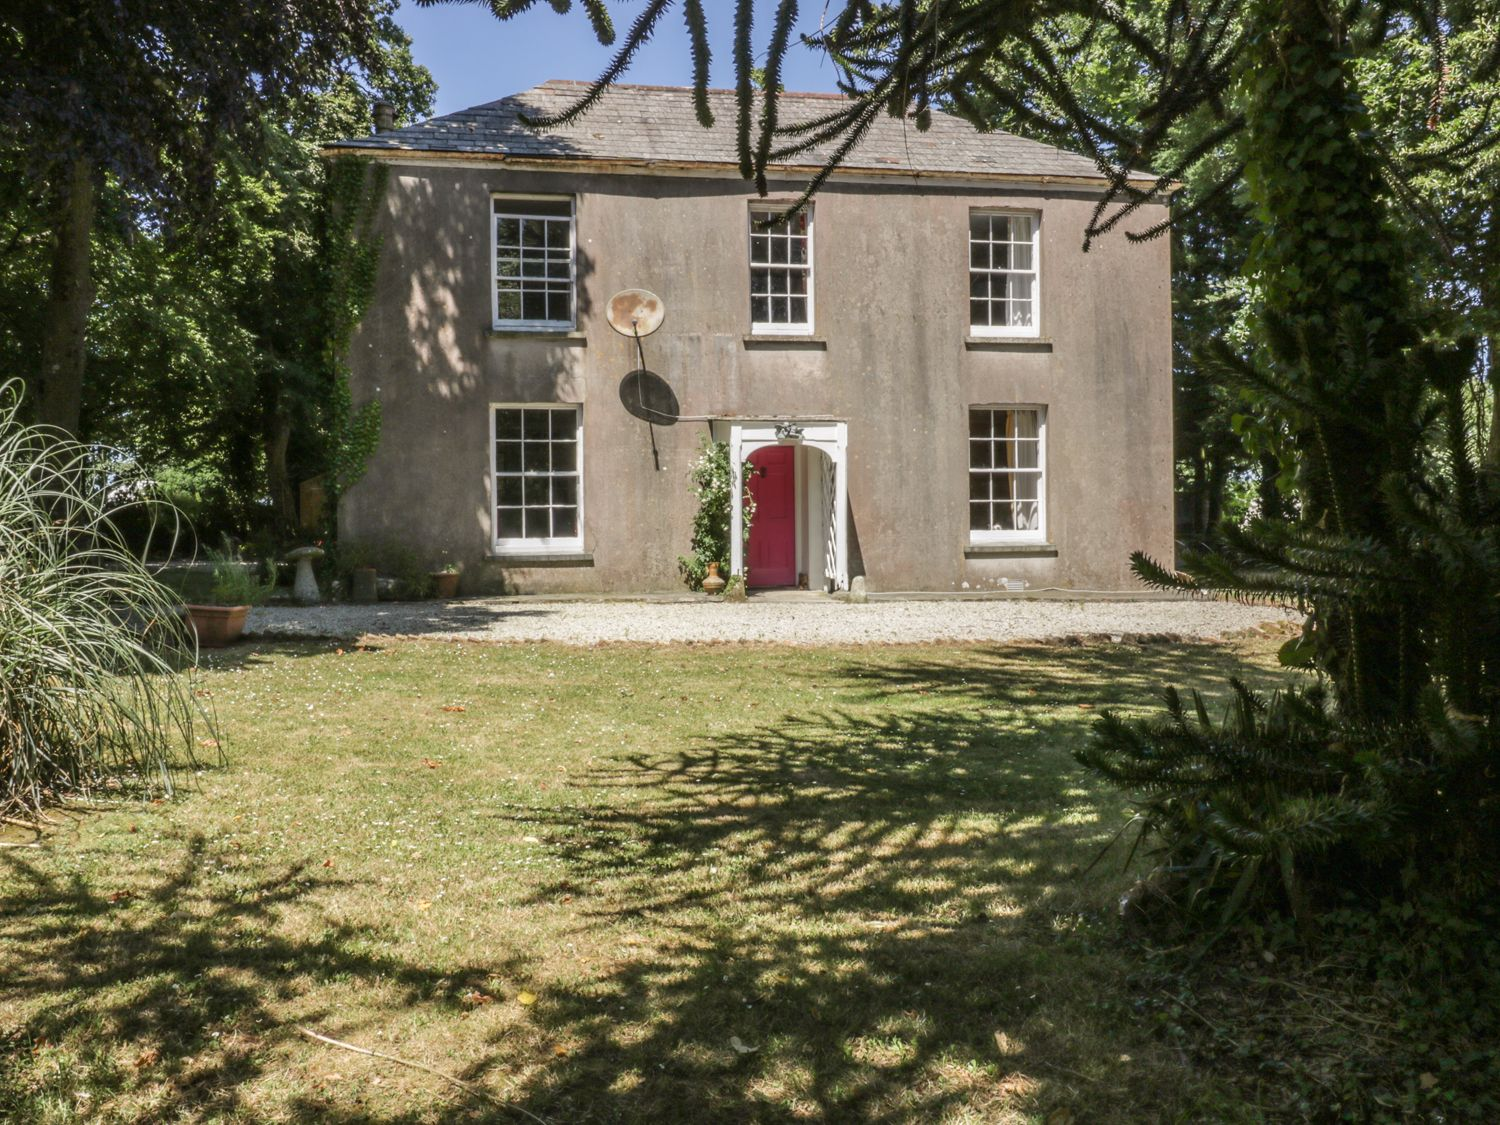 Benbole Farmhouse, Wadebridge, Cornwall